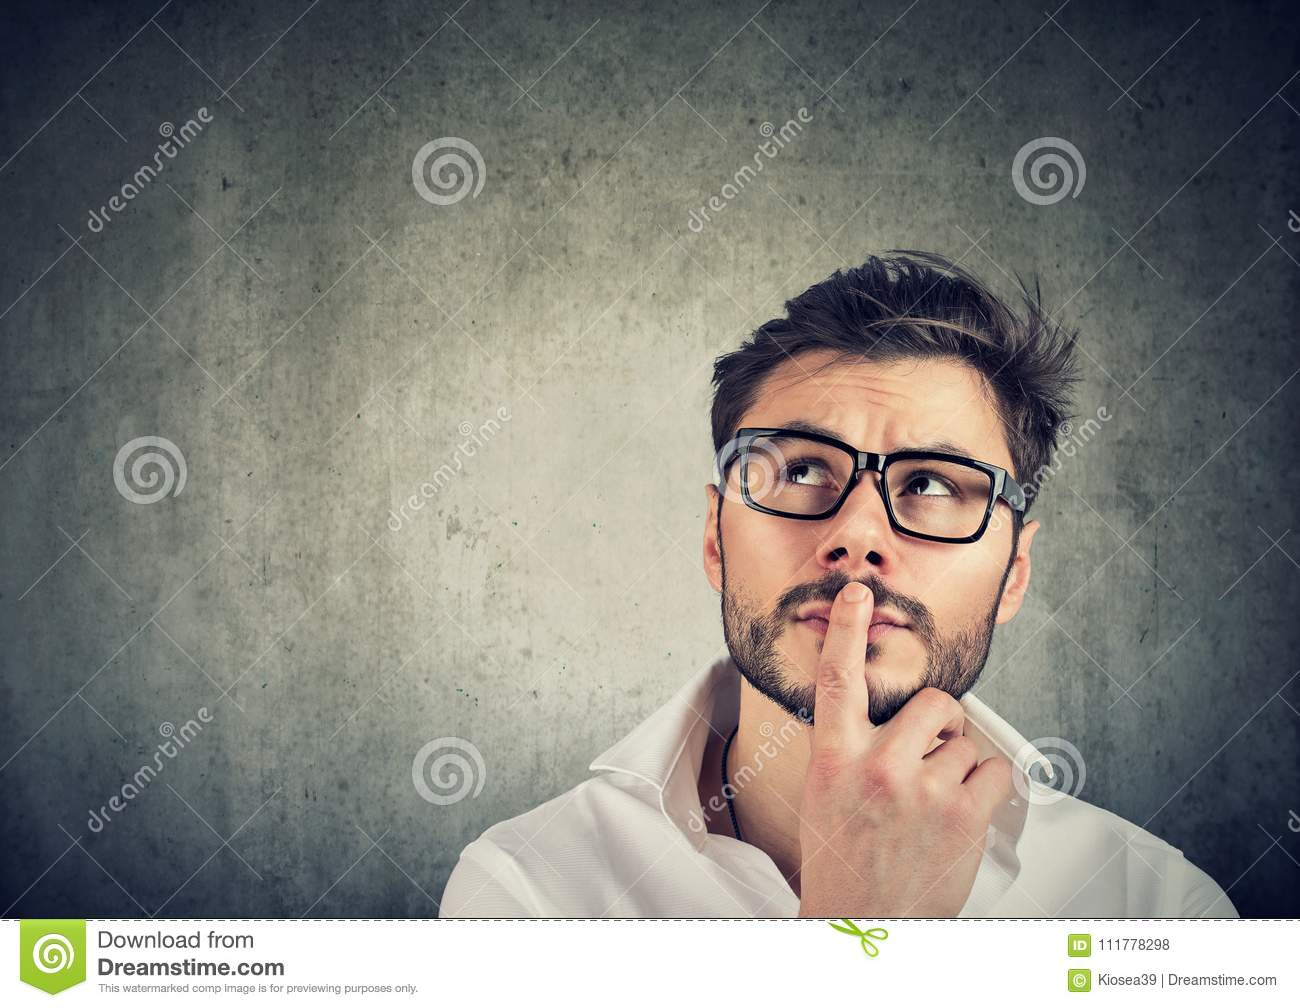 Pensive man trying to make decision